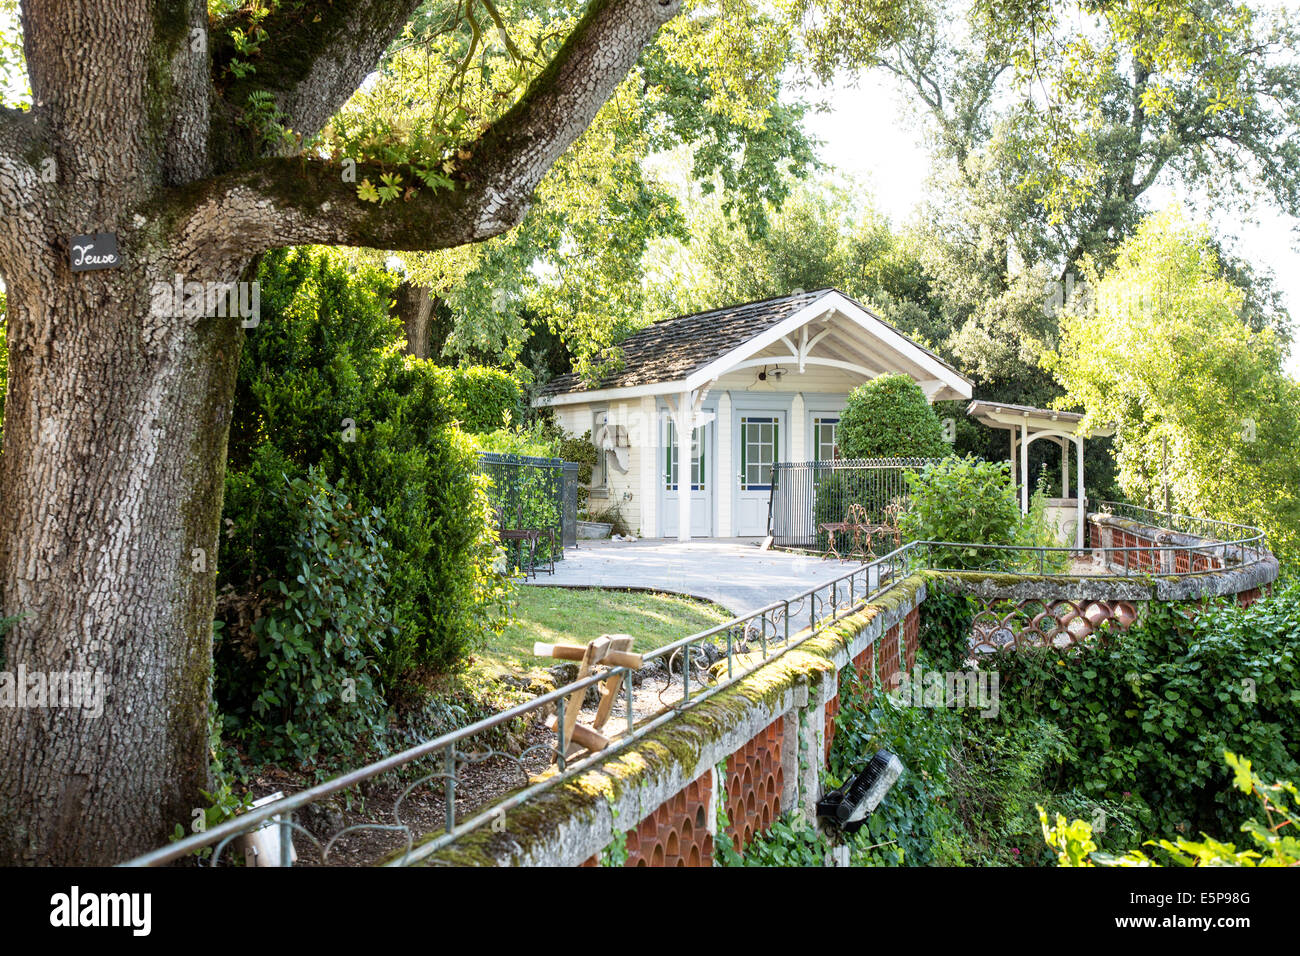 French Summerhouse  Cognac France - Stock Image